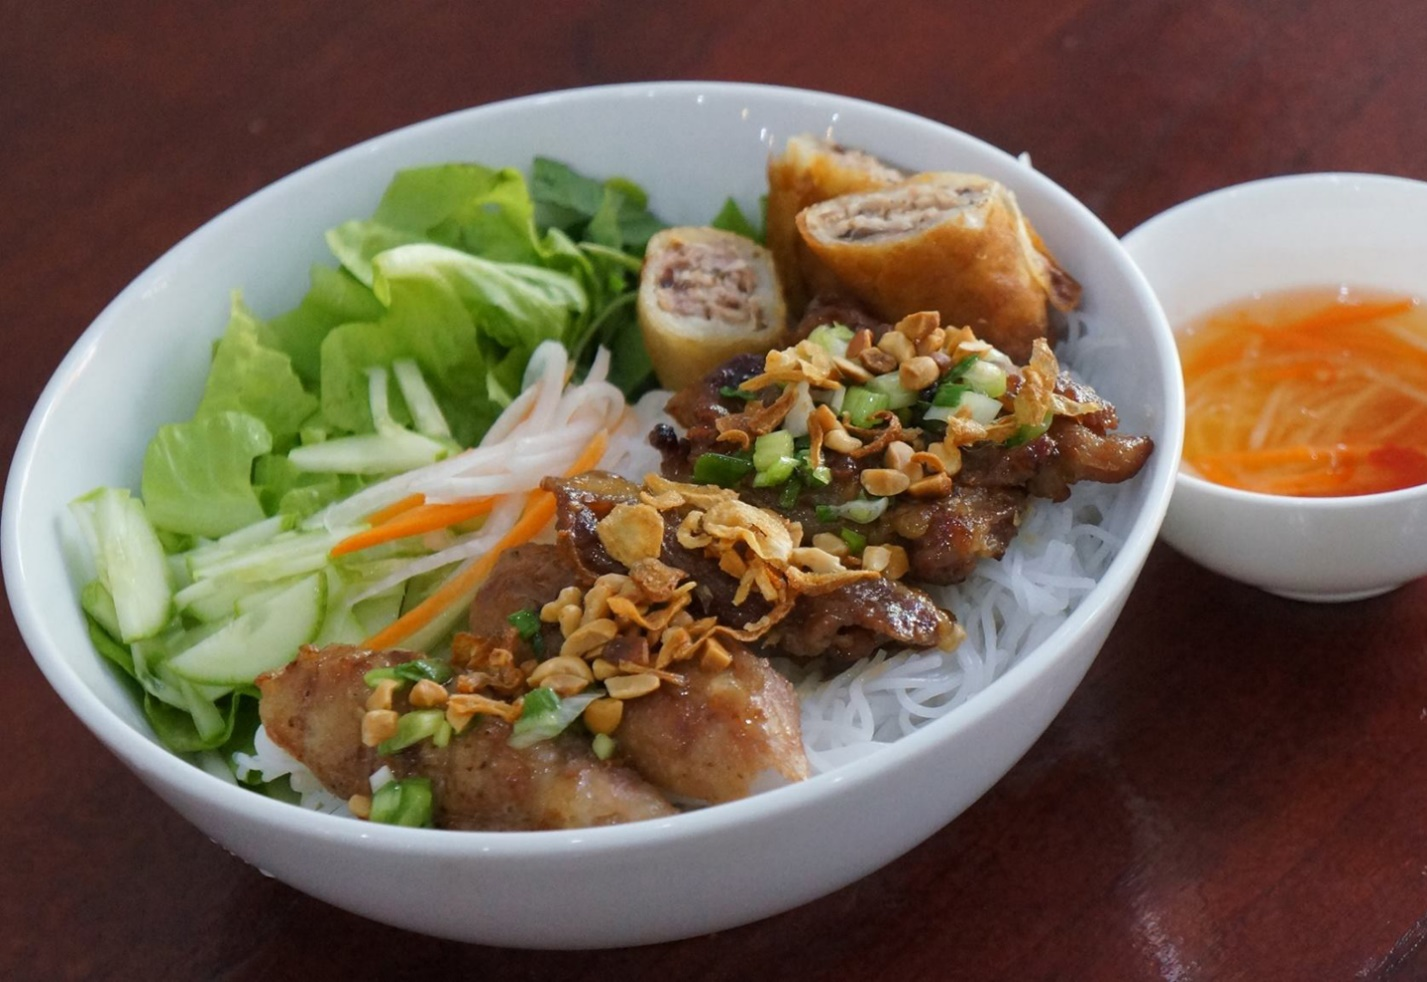 A bowl of delicious Bun Thit Nuong